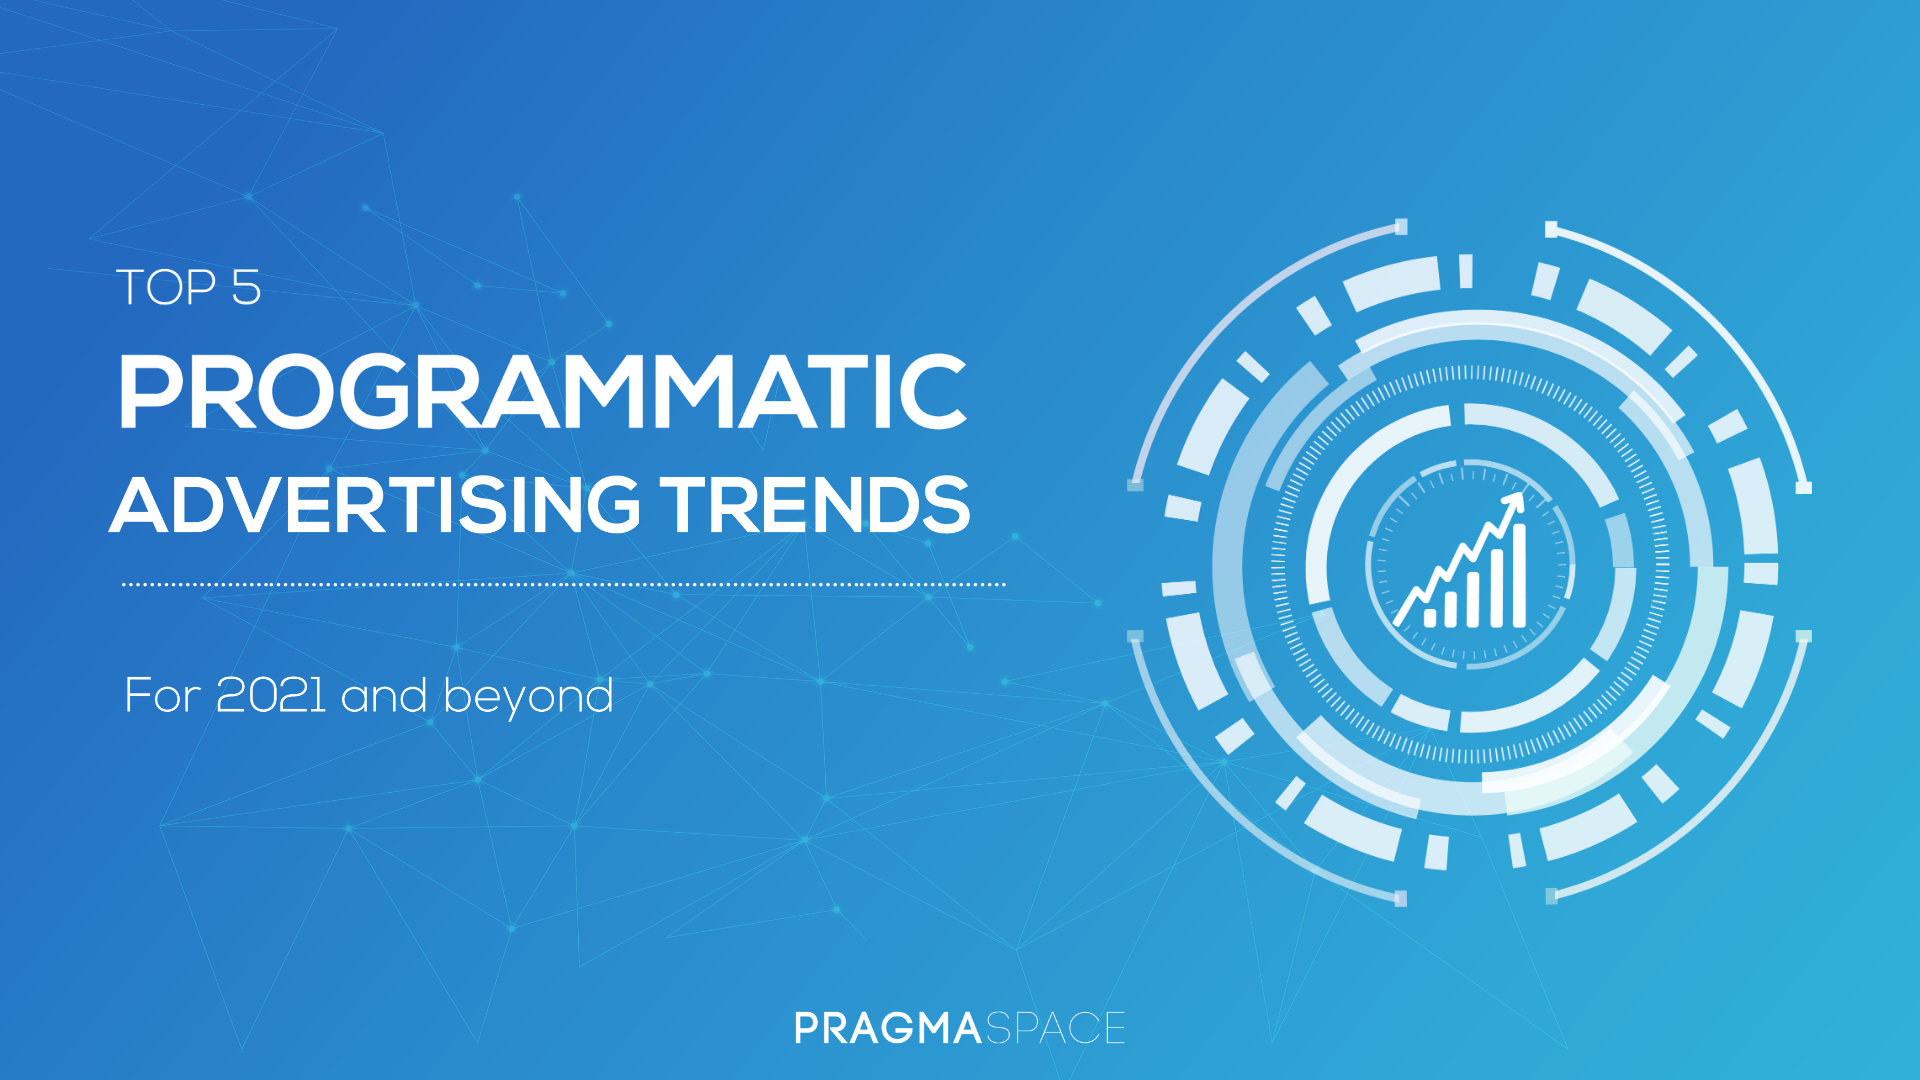 The top 5 biggest Programmatic Trends that will define 2021 - and beyond